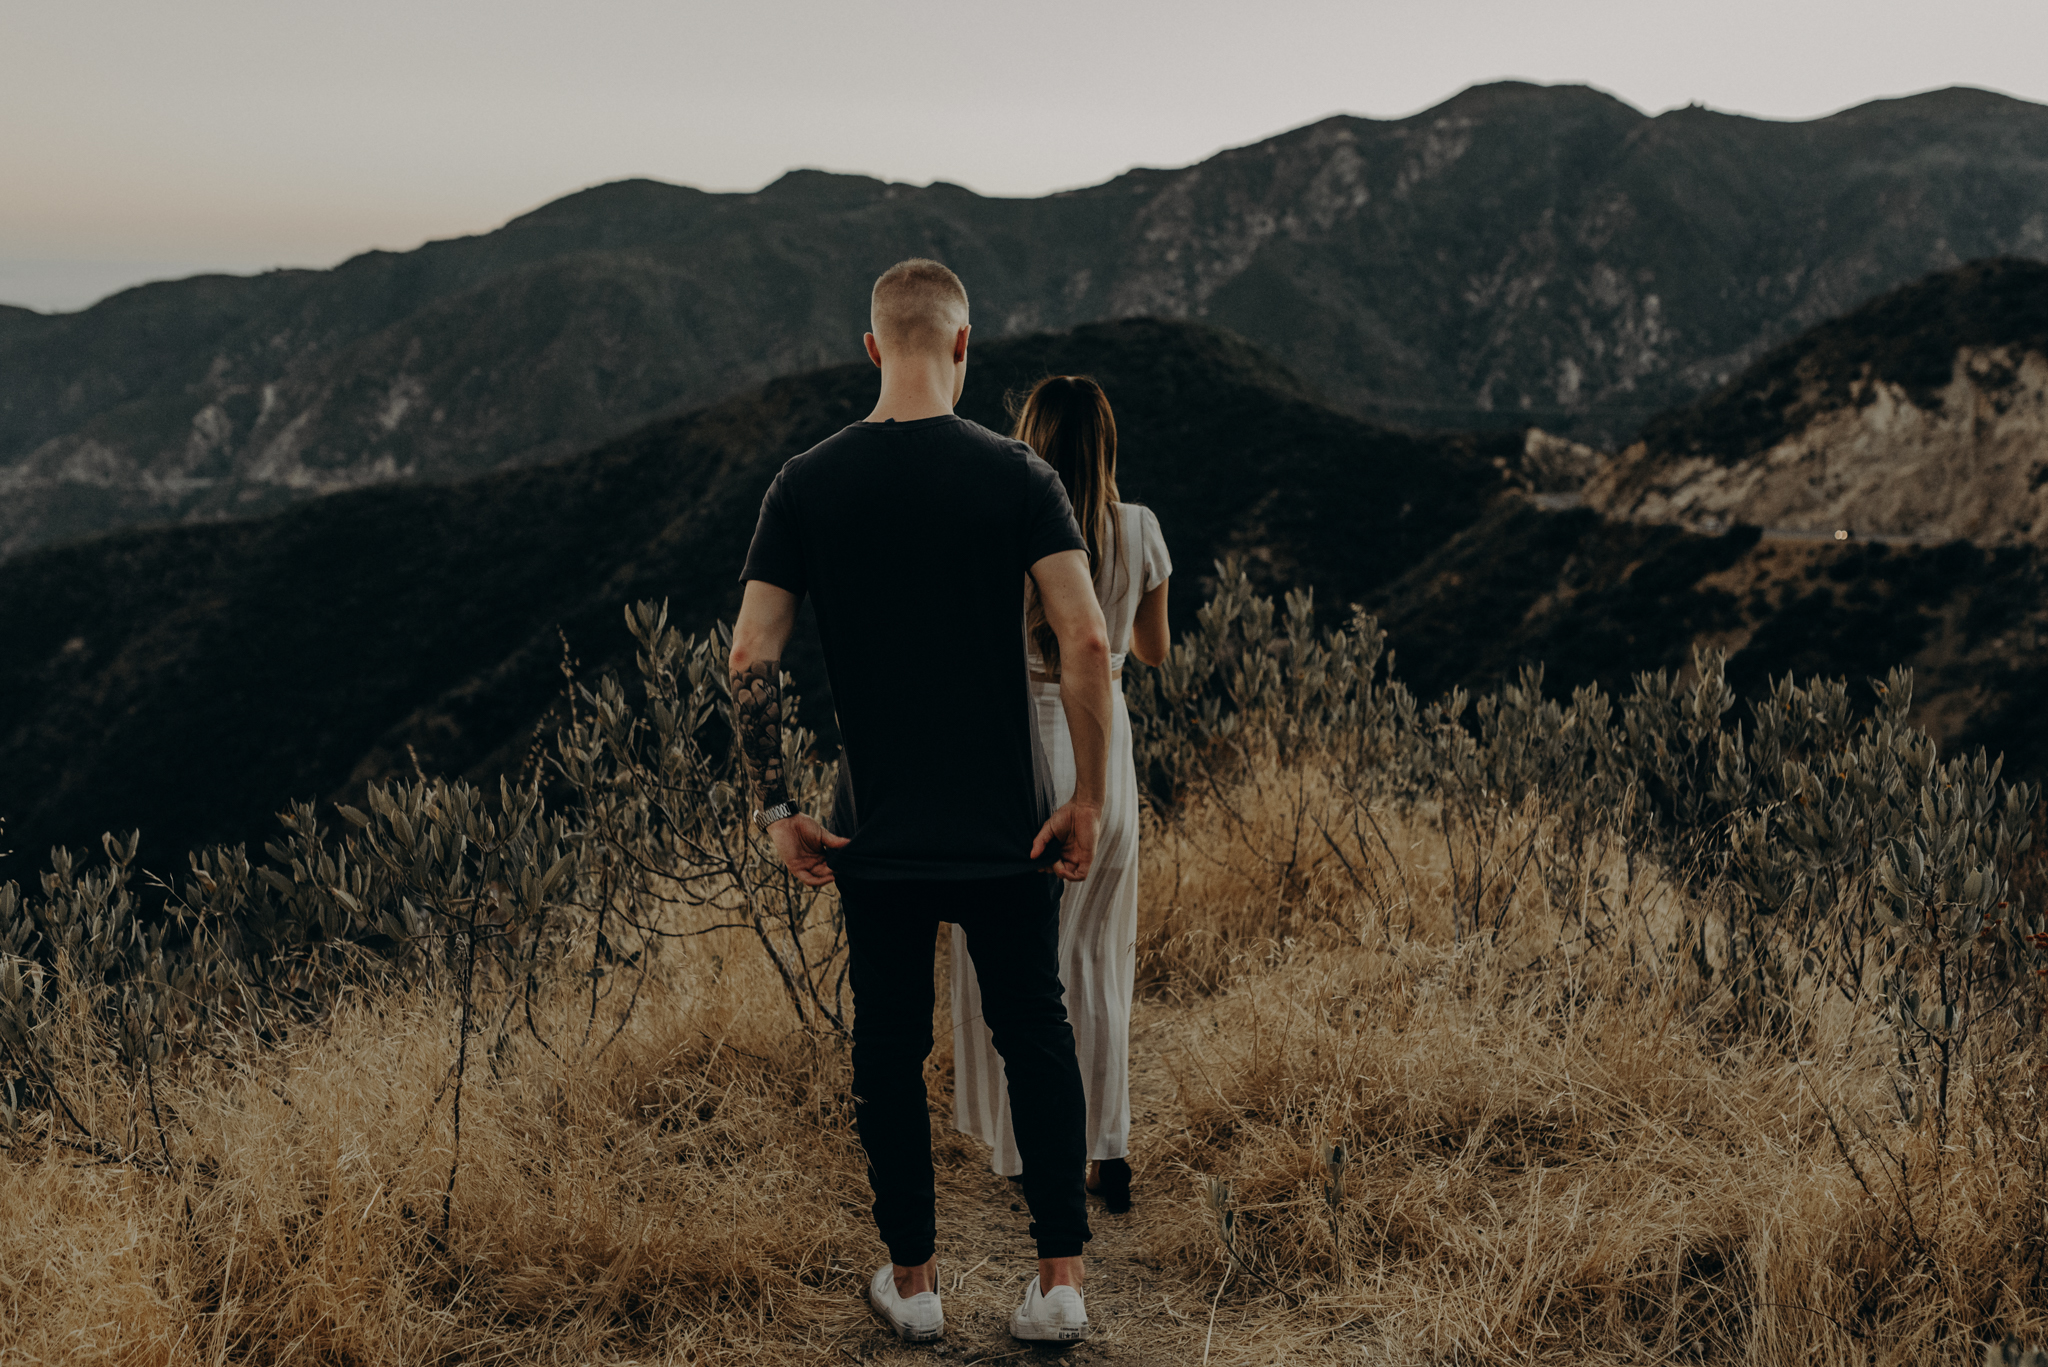 Isaiah + Taylor Photography - Los Angeles Forest Engagement Session - Laid back wedding photographer-019.jpg